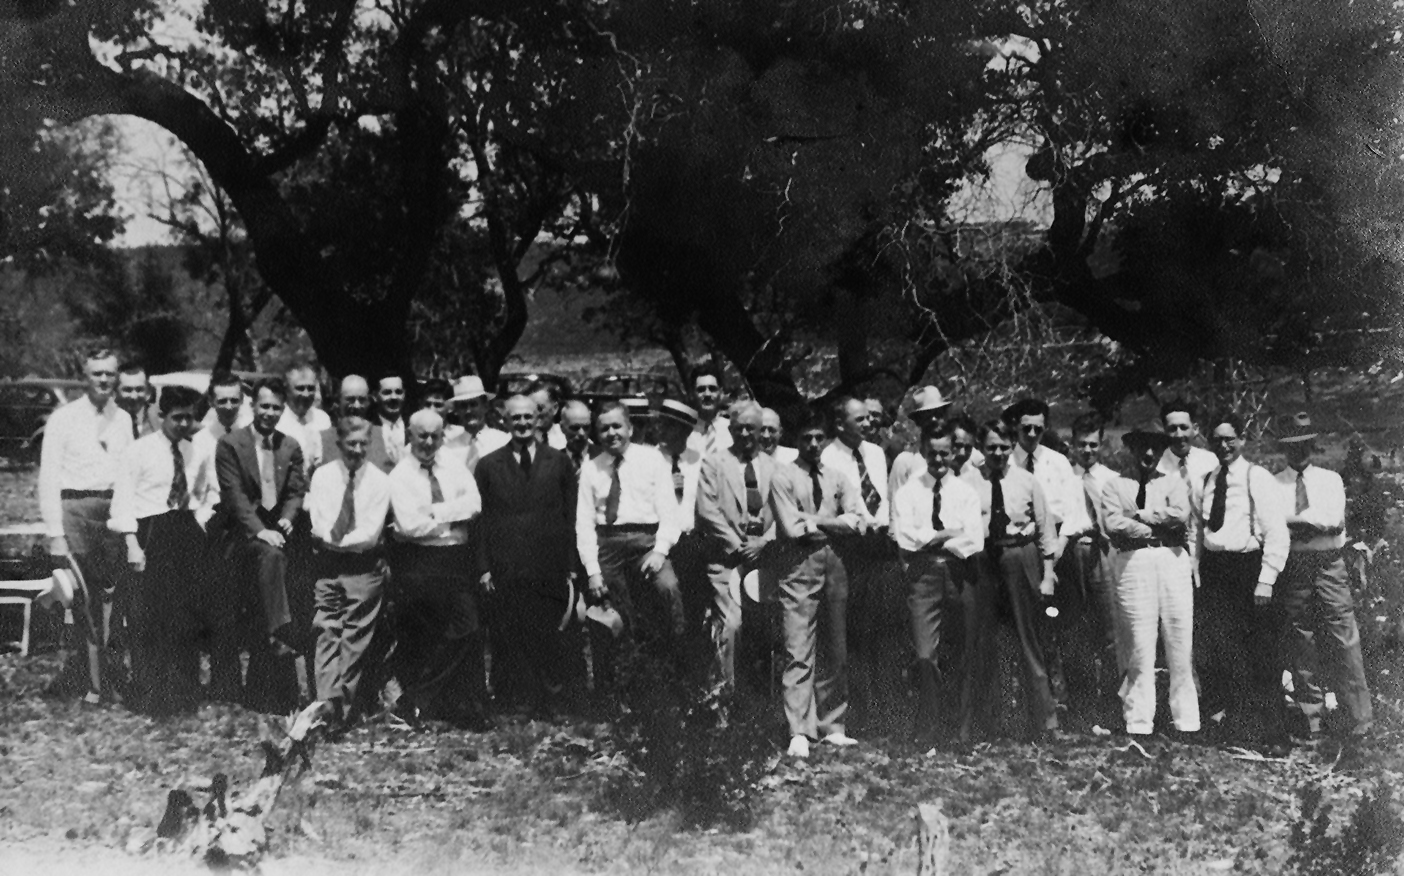 UT PGE faculty and students pose for a photo at an American Institute of Mining, Metallurgical, and Petroleum Engineers (AIME) field trip in Texas, 1936.